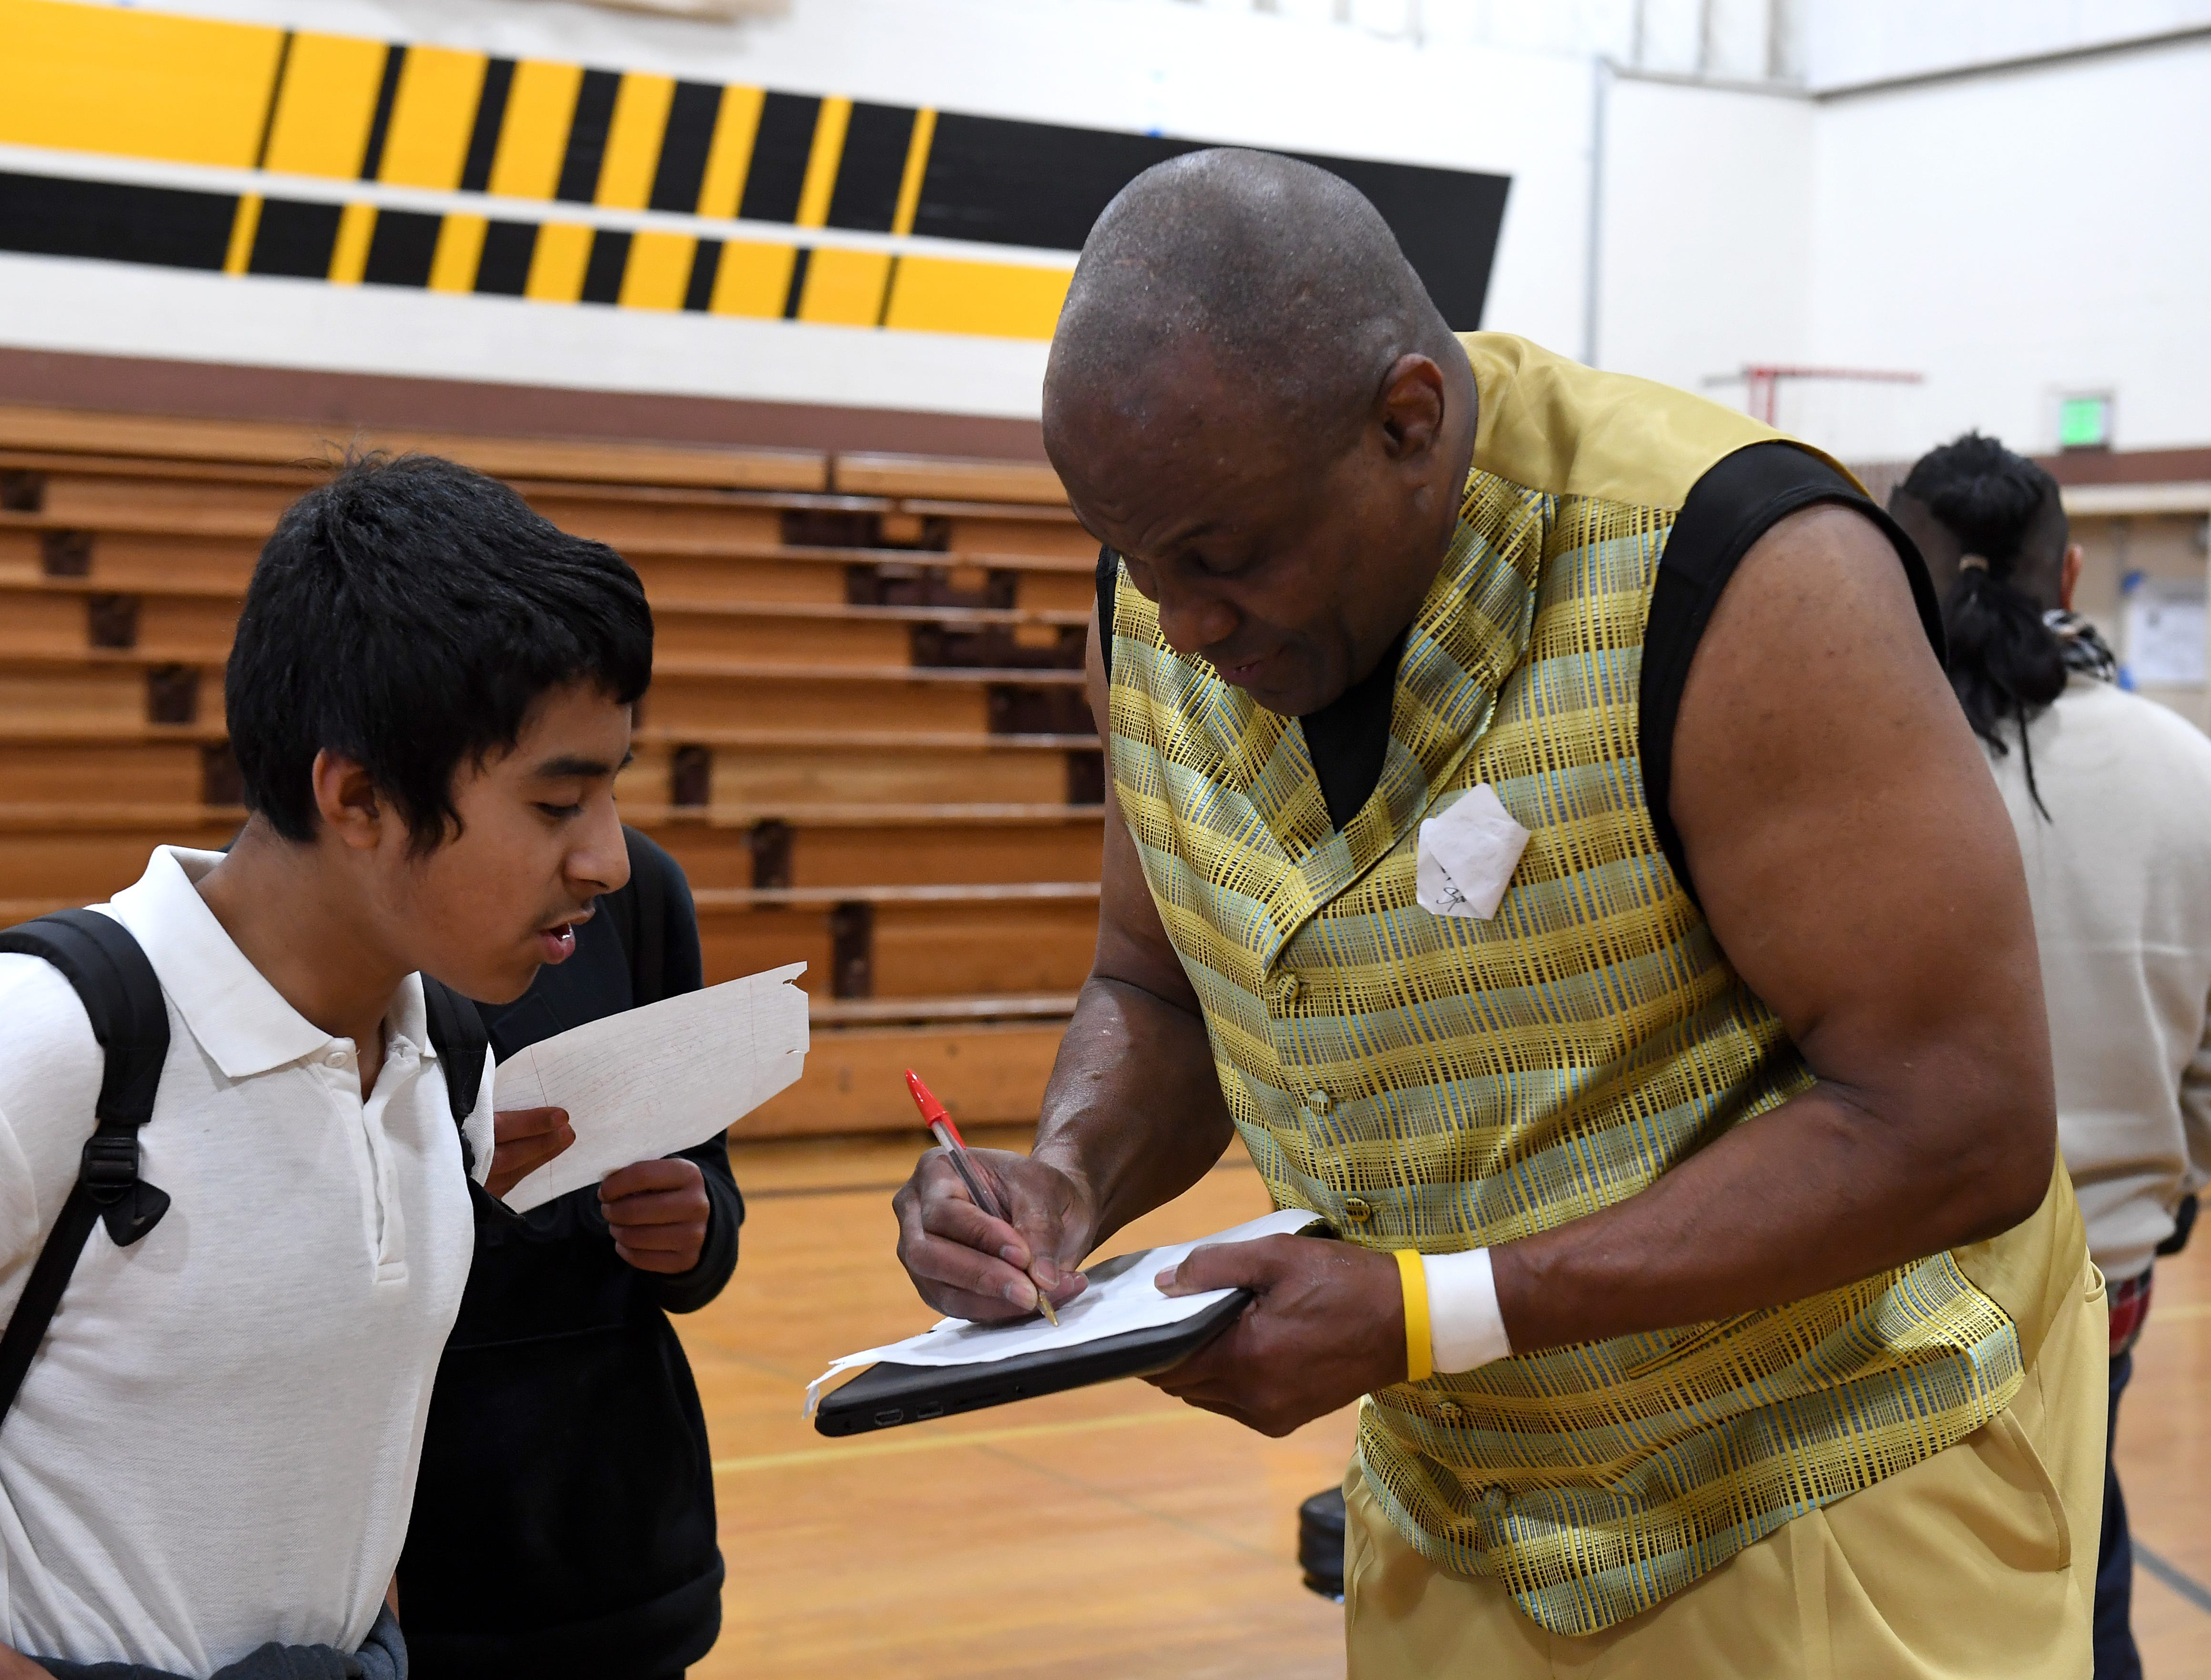 James Thompson signs his autographs for students at El Sausal Middle School Feb. 21, 2019.